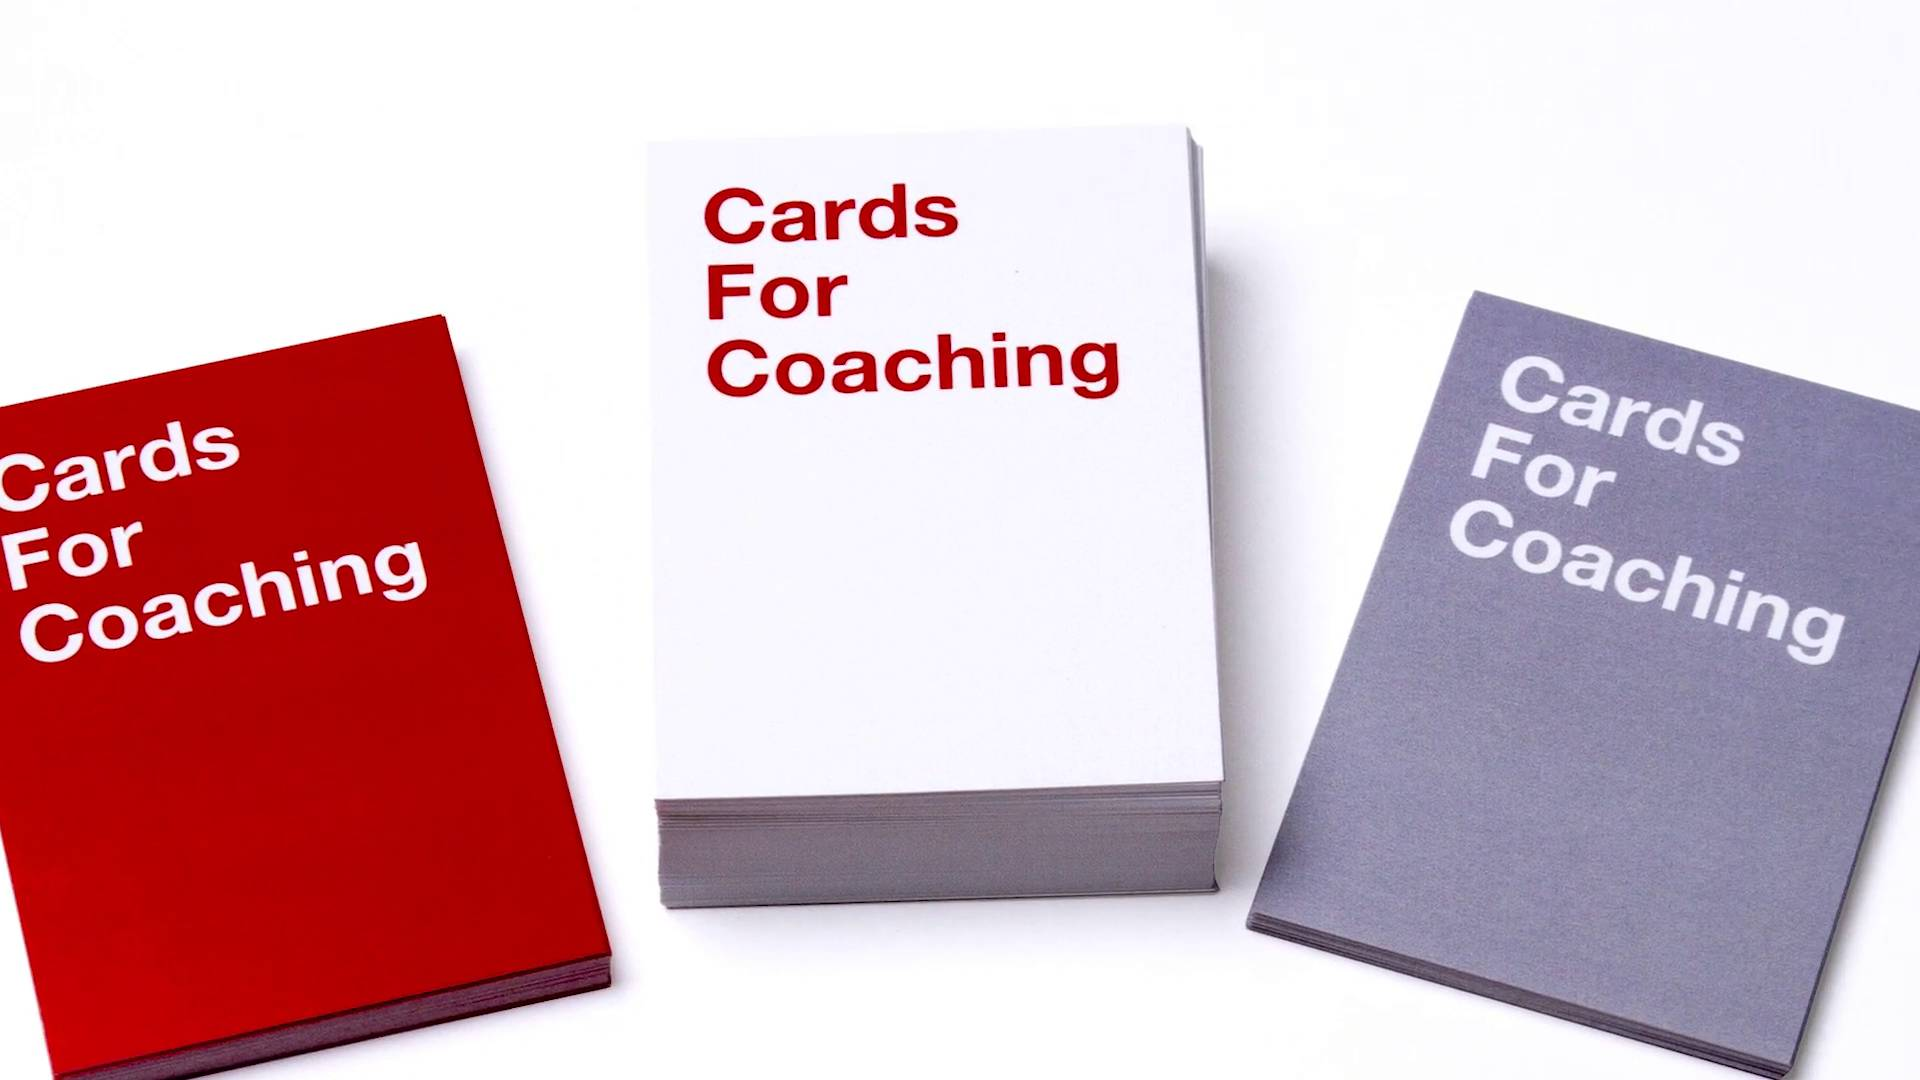 Cards for Coaching